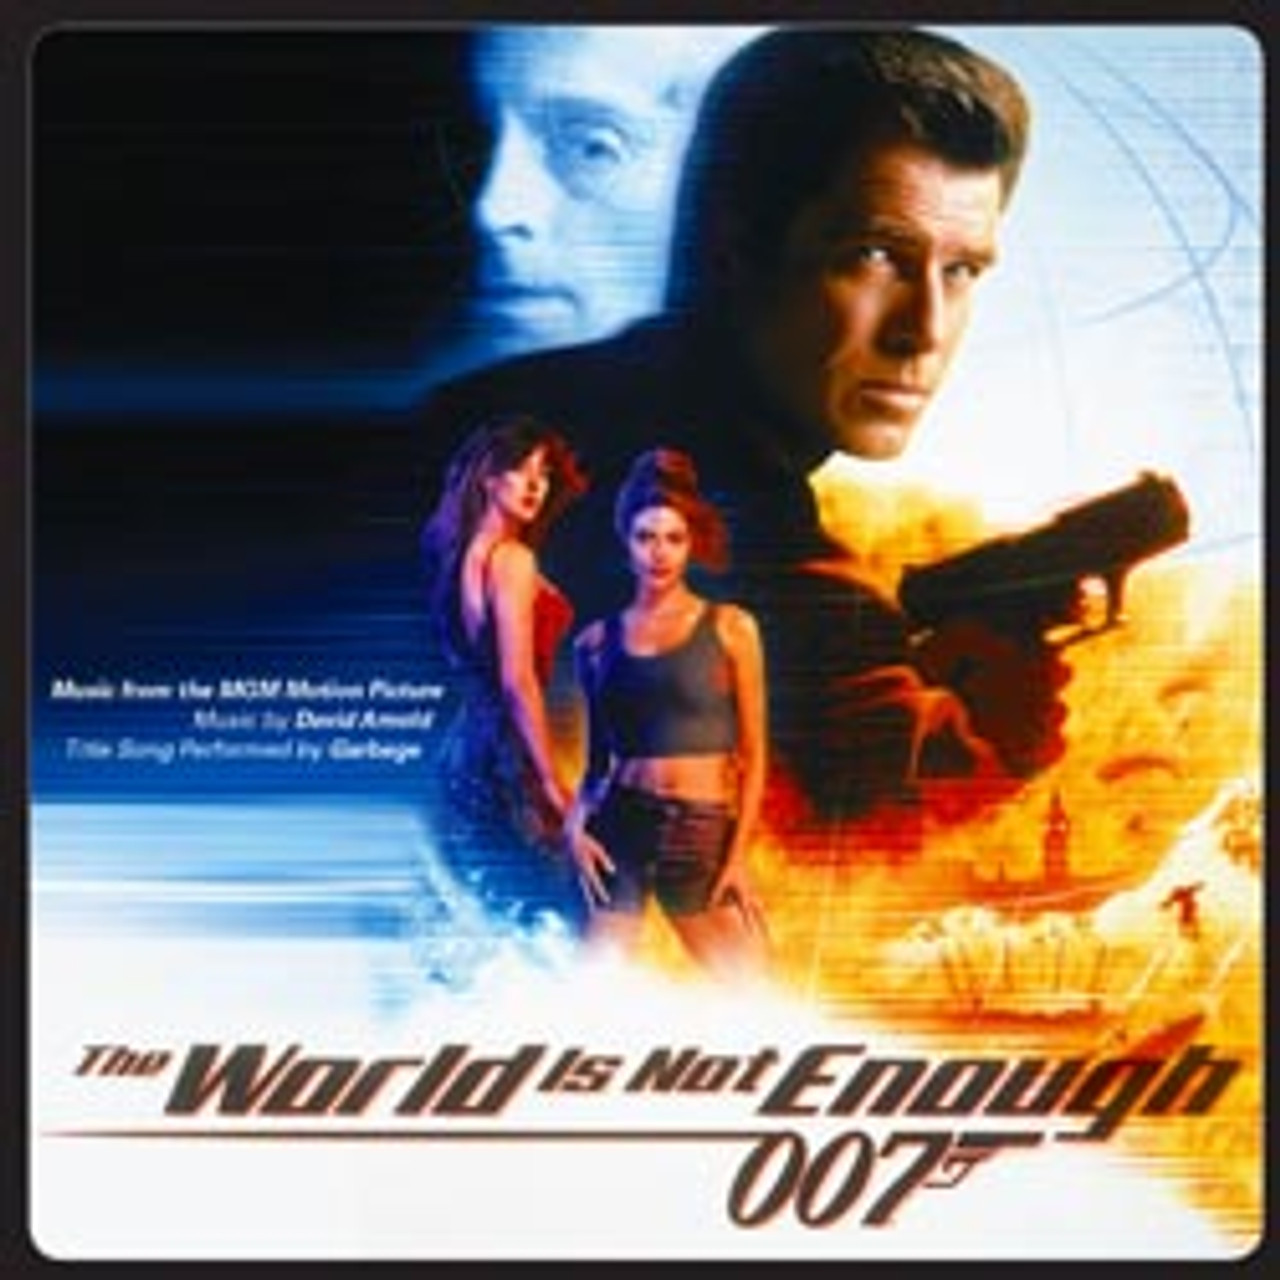 THE WORLD IS NOT ENOUGH: LIMITED EDITION (2-CD SET)